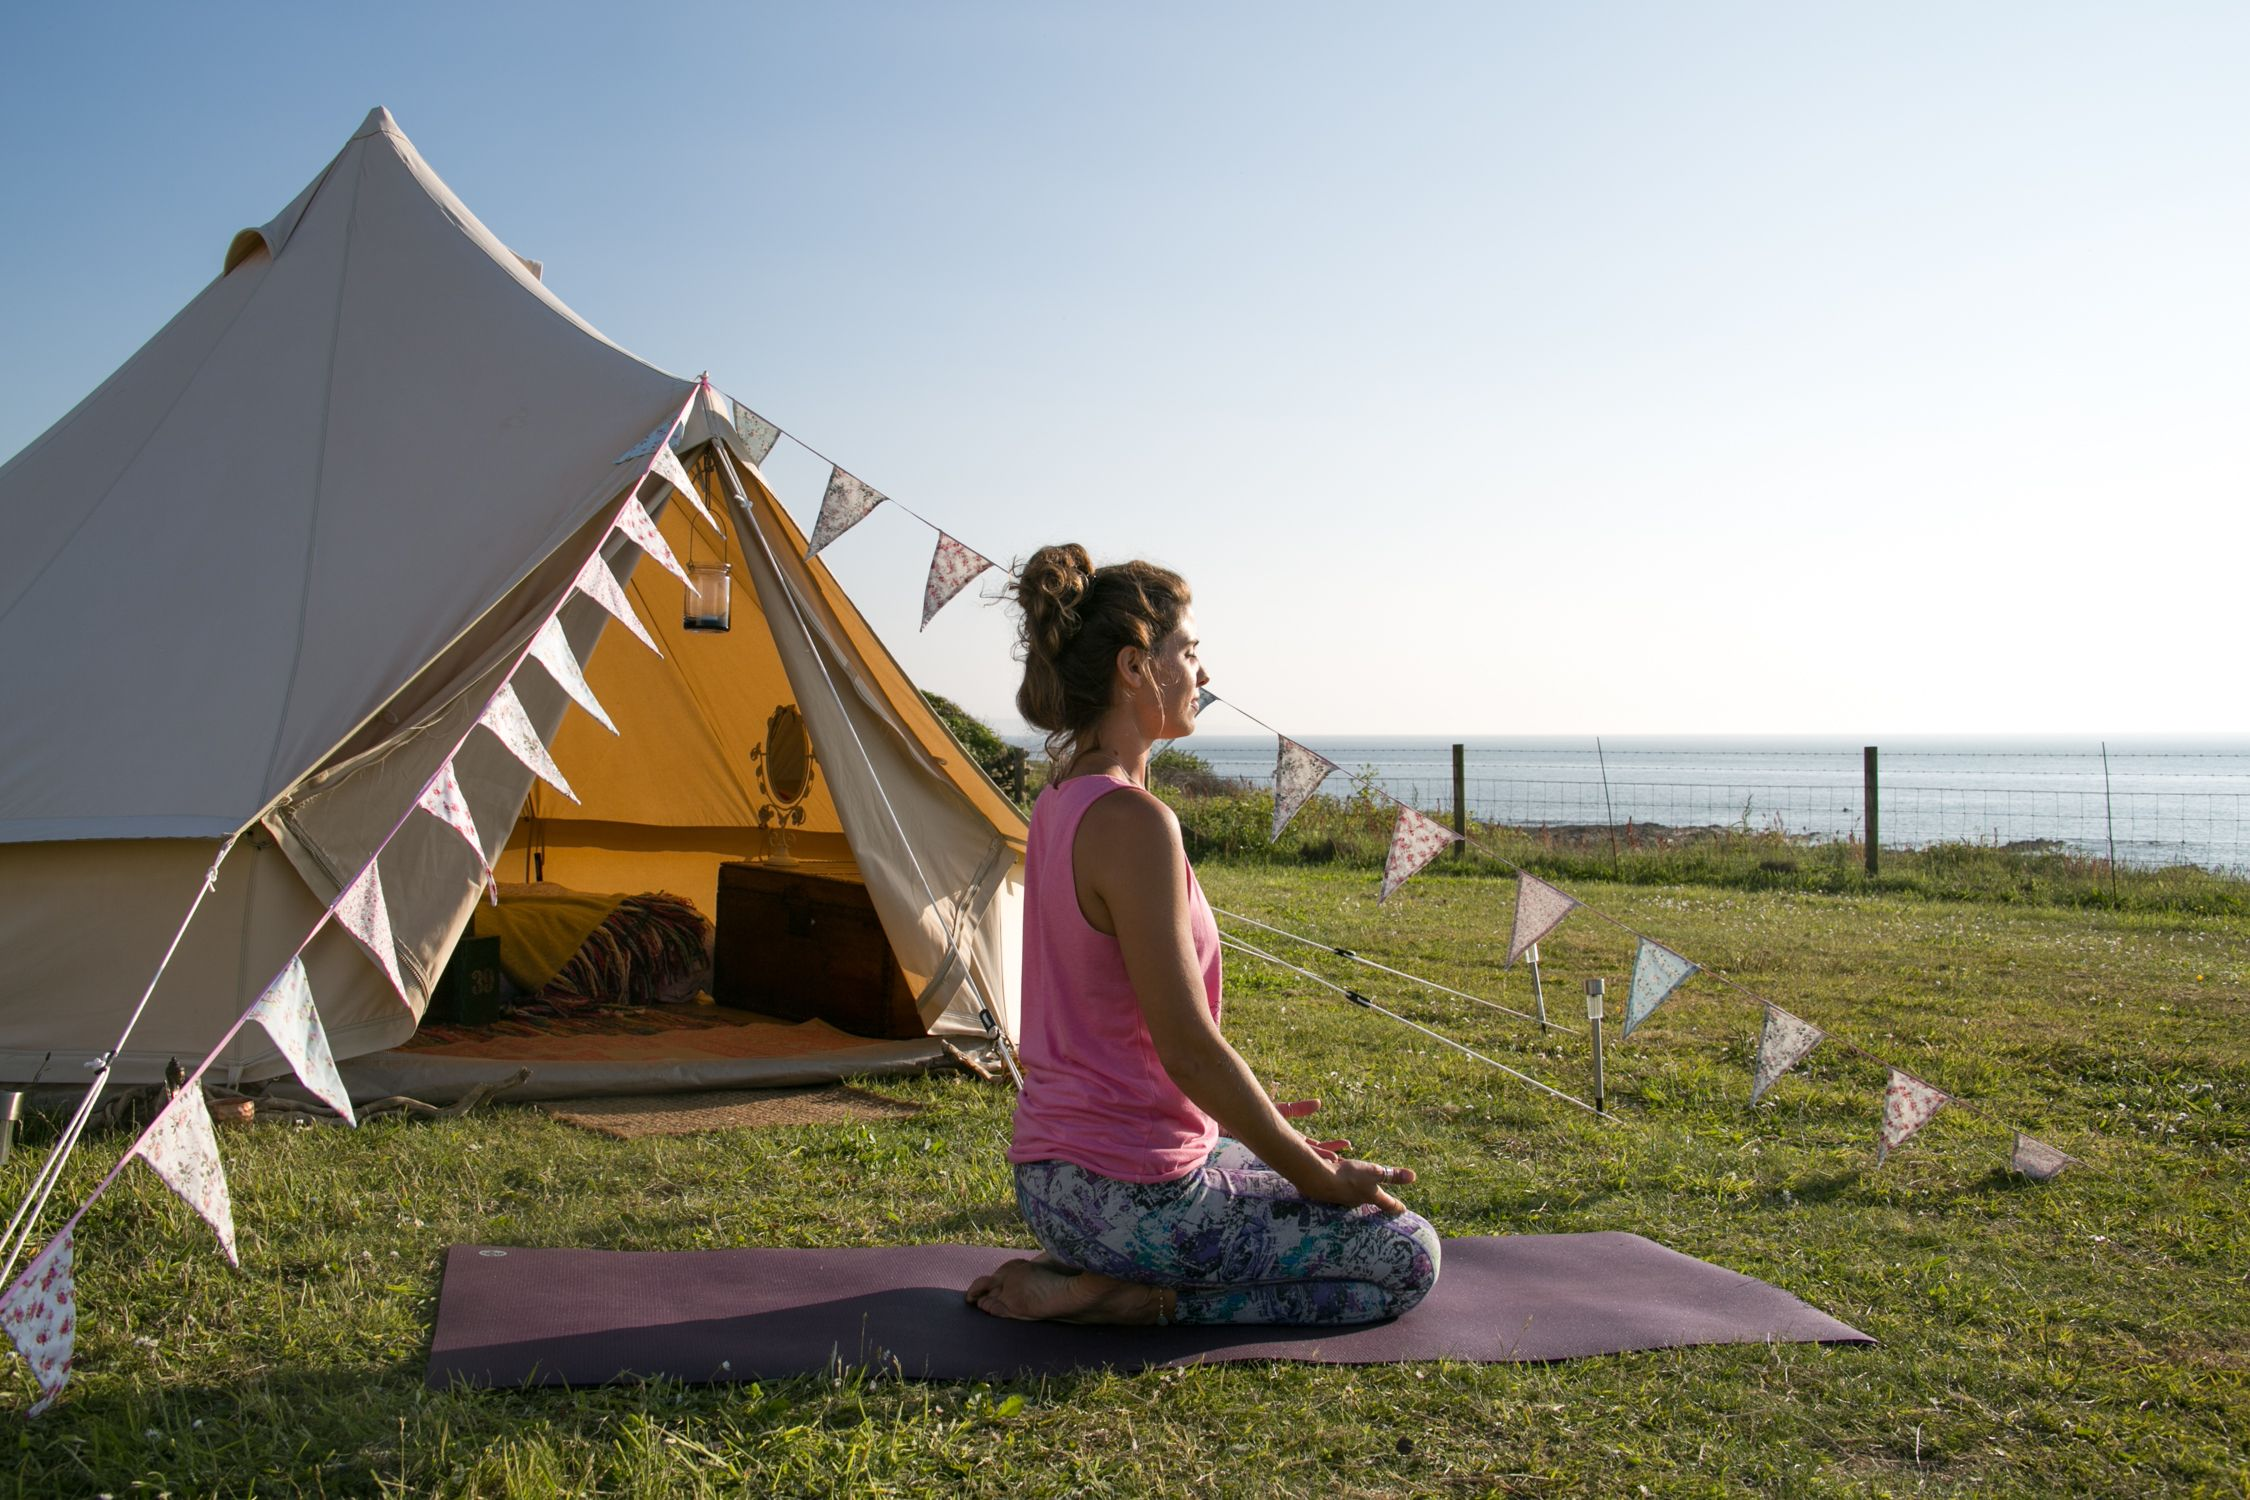 Relax and unwind by the sea at a Yoga Glamp Retreat http://www.bluefizzevents.co.uk/yogaglamp/